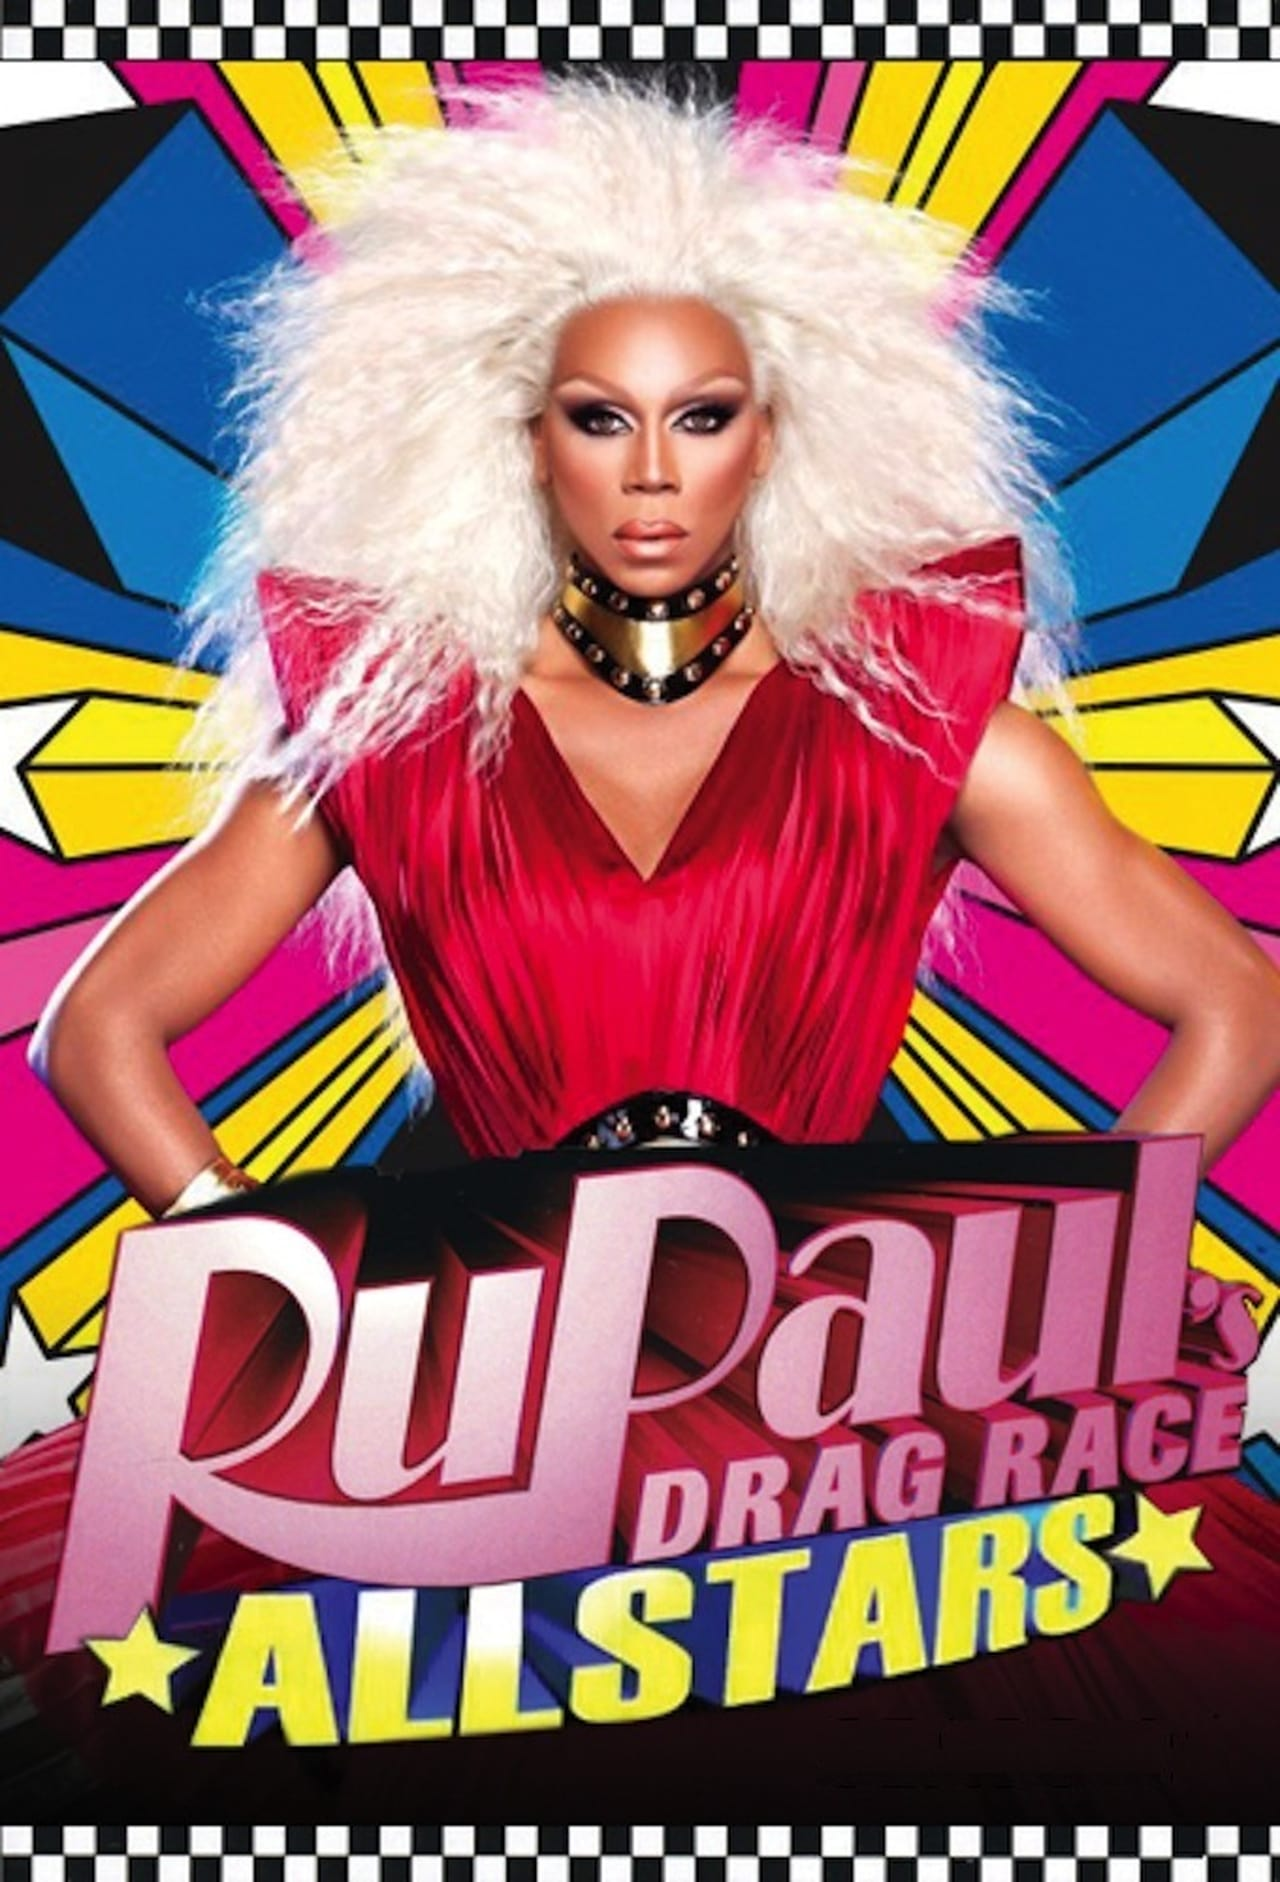 Rupaul's Drag Race All Stars Season 1